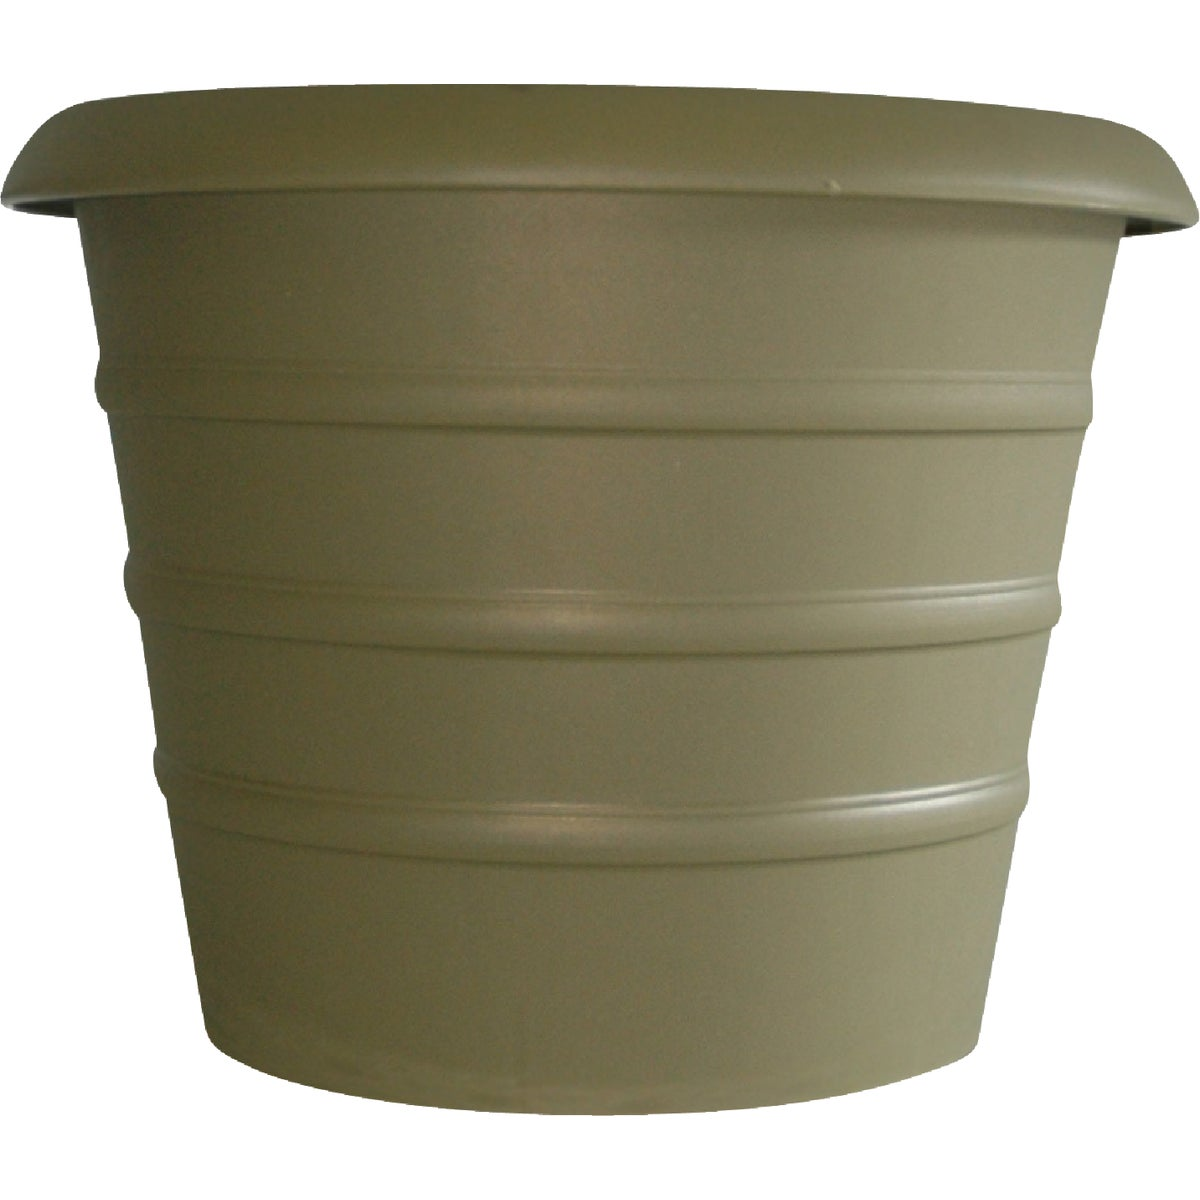 "12""SL GREEN MARINA POT - MSA12000B15 by Myers Industries Inc"